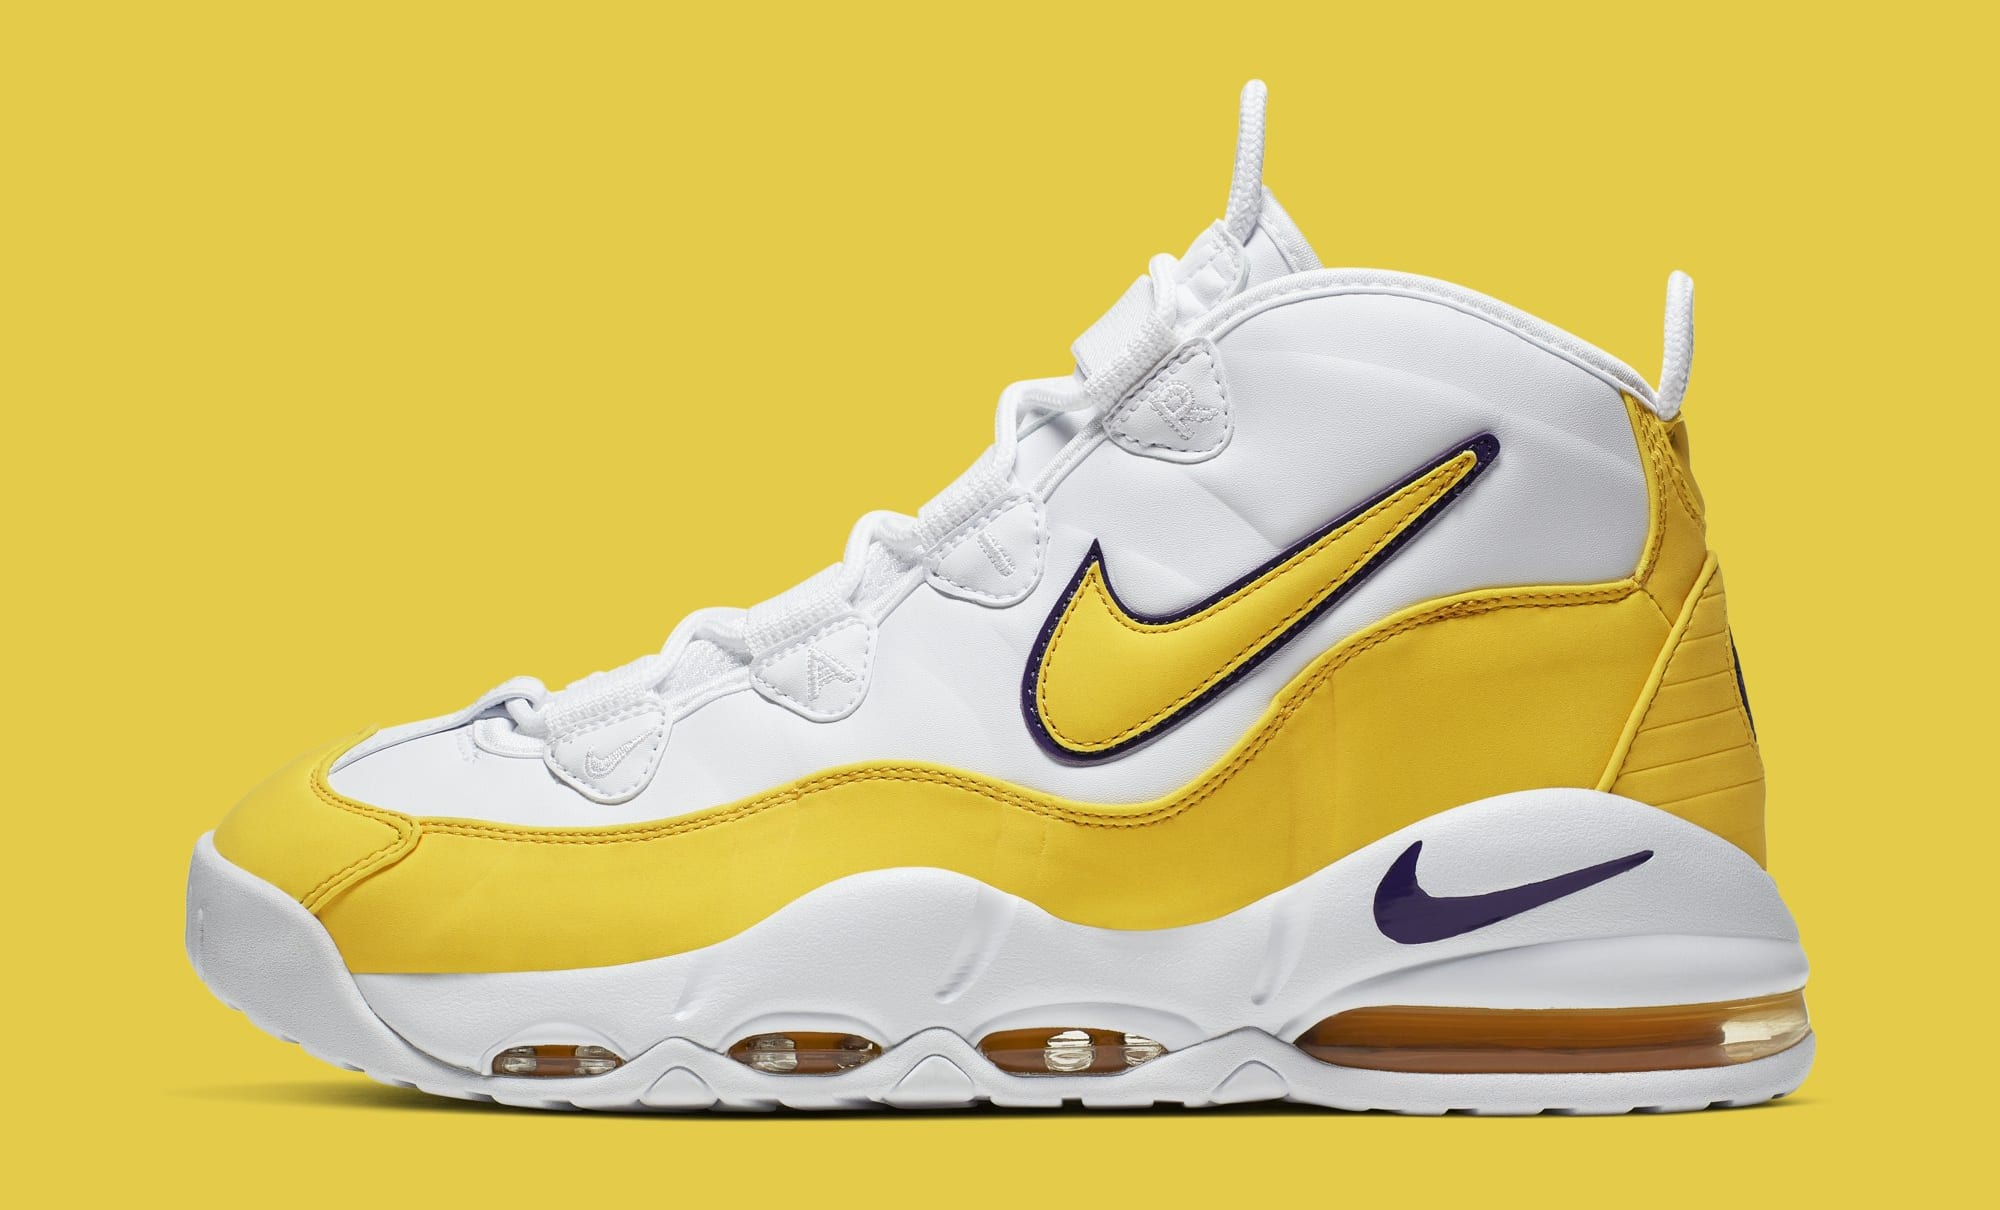 Nike Air Max Uptempo 'Derek Fisher PE' CK0892-102 (Lateral)